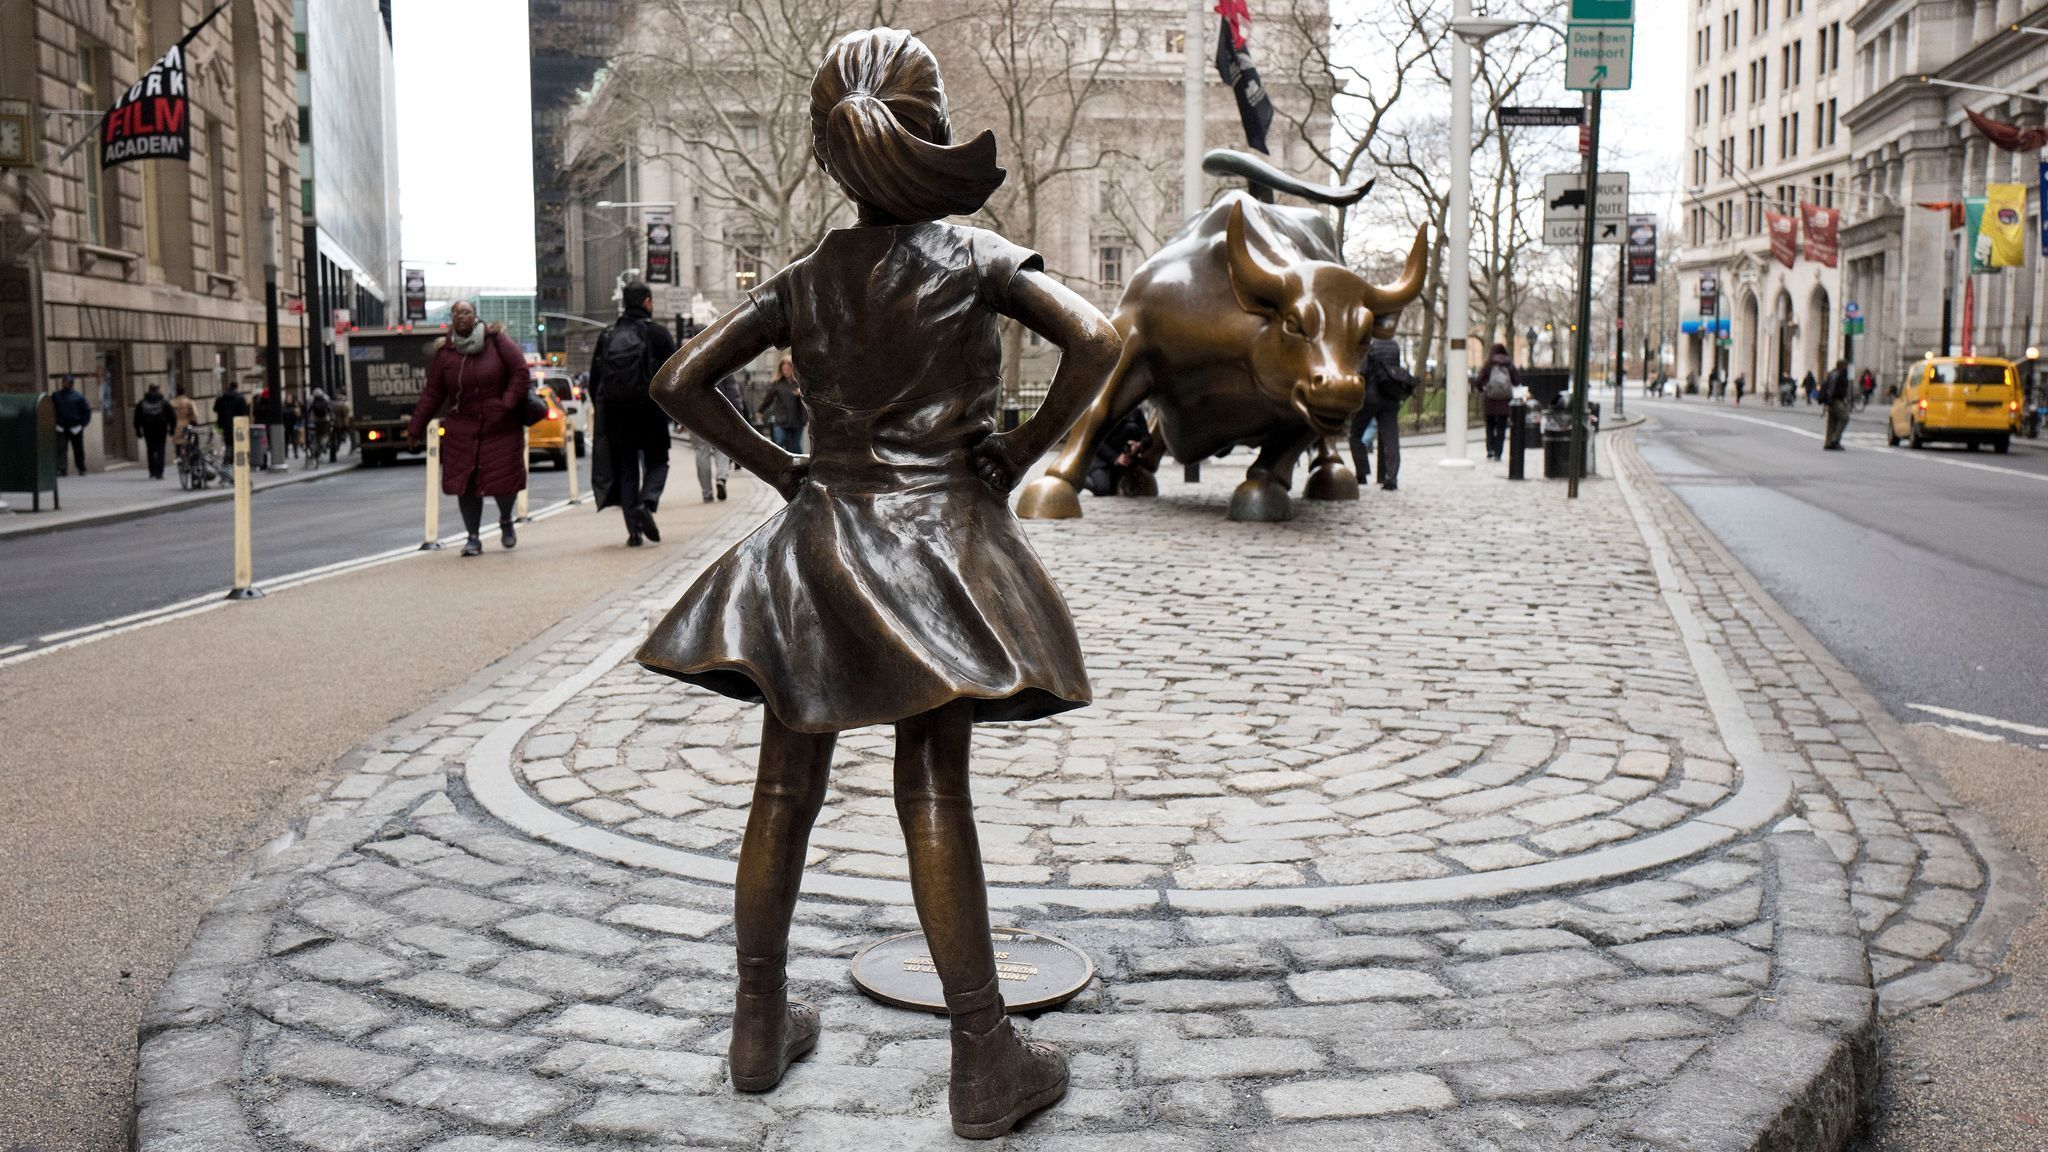 Why there's a statue of a fearless girl facing Wall Street's 'Charging Bull'